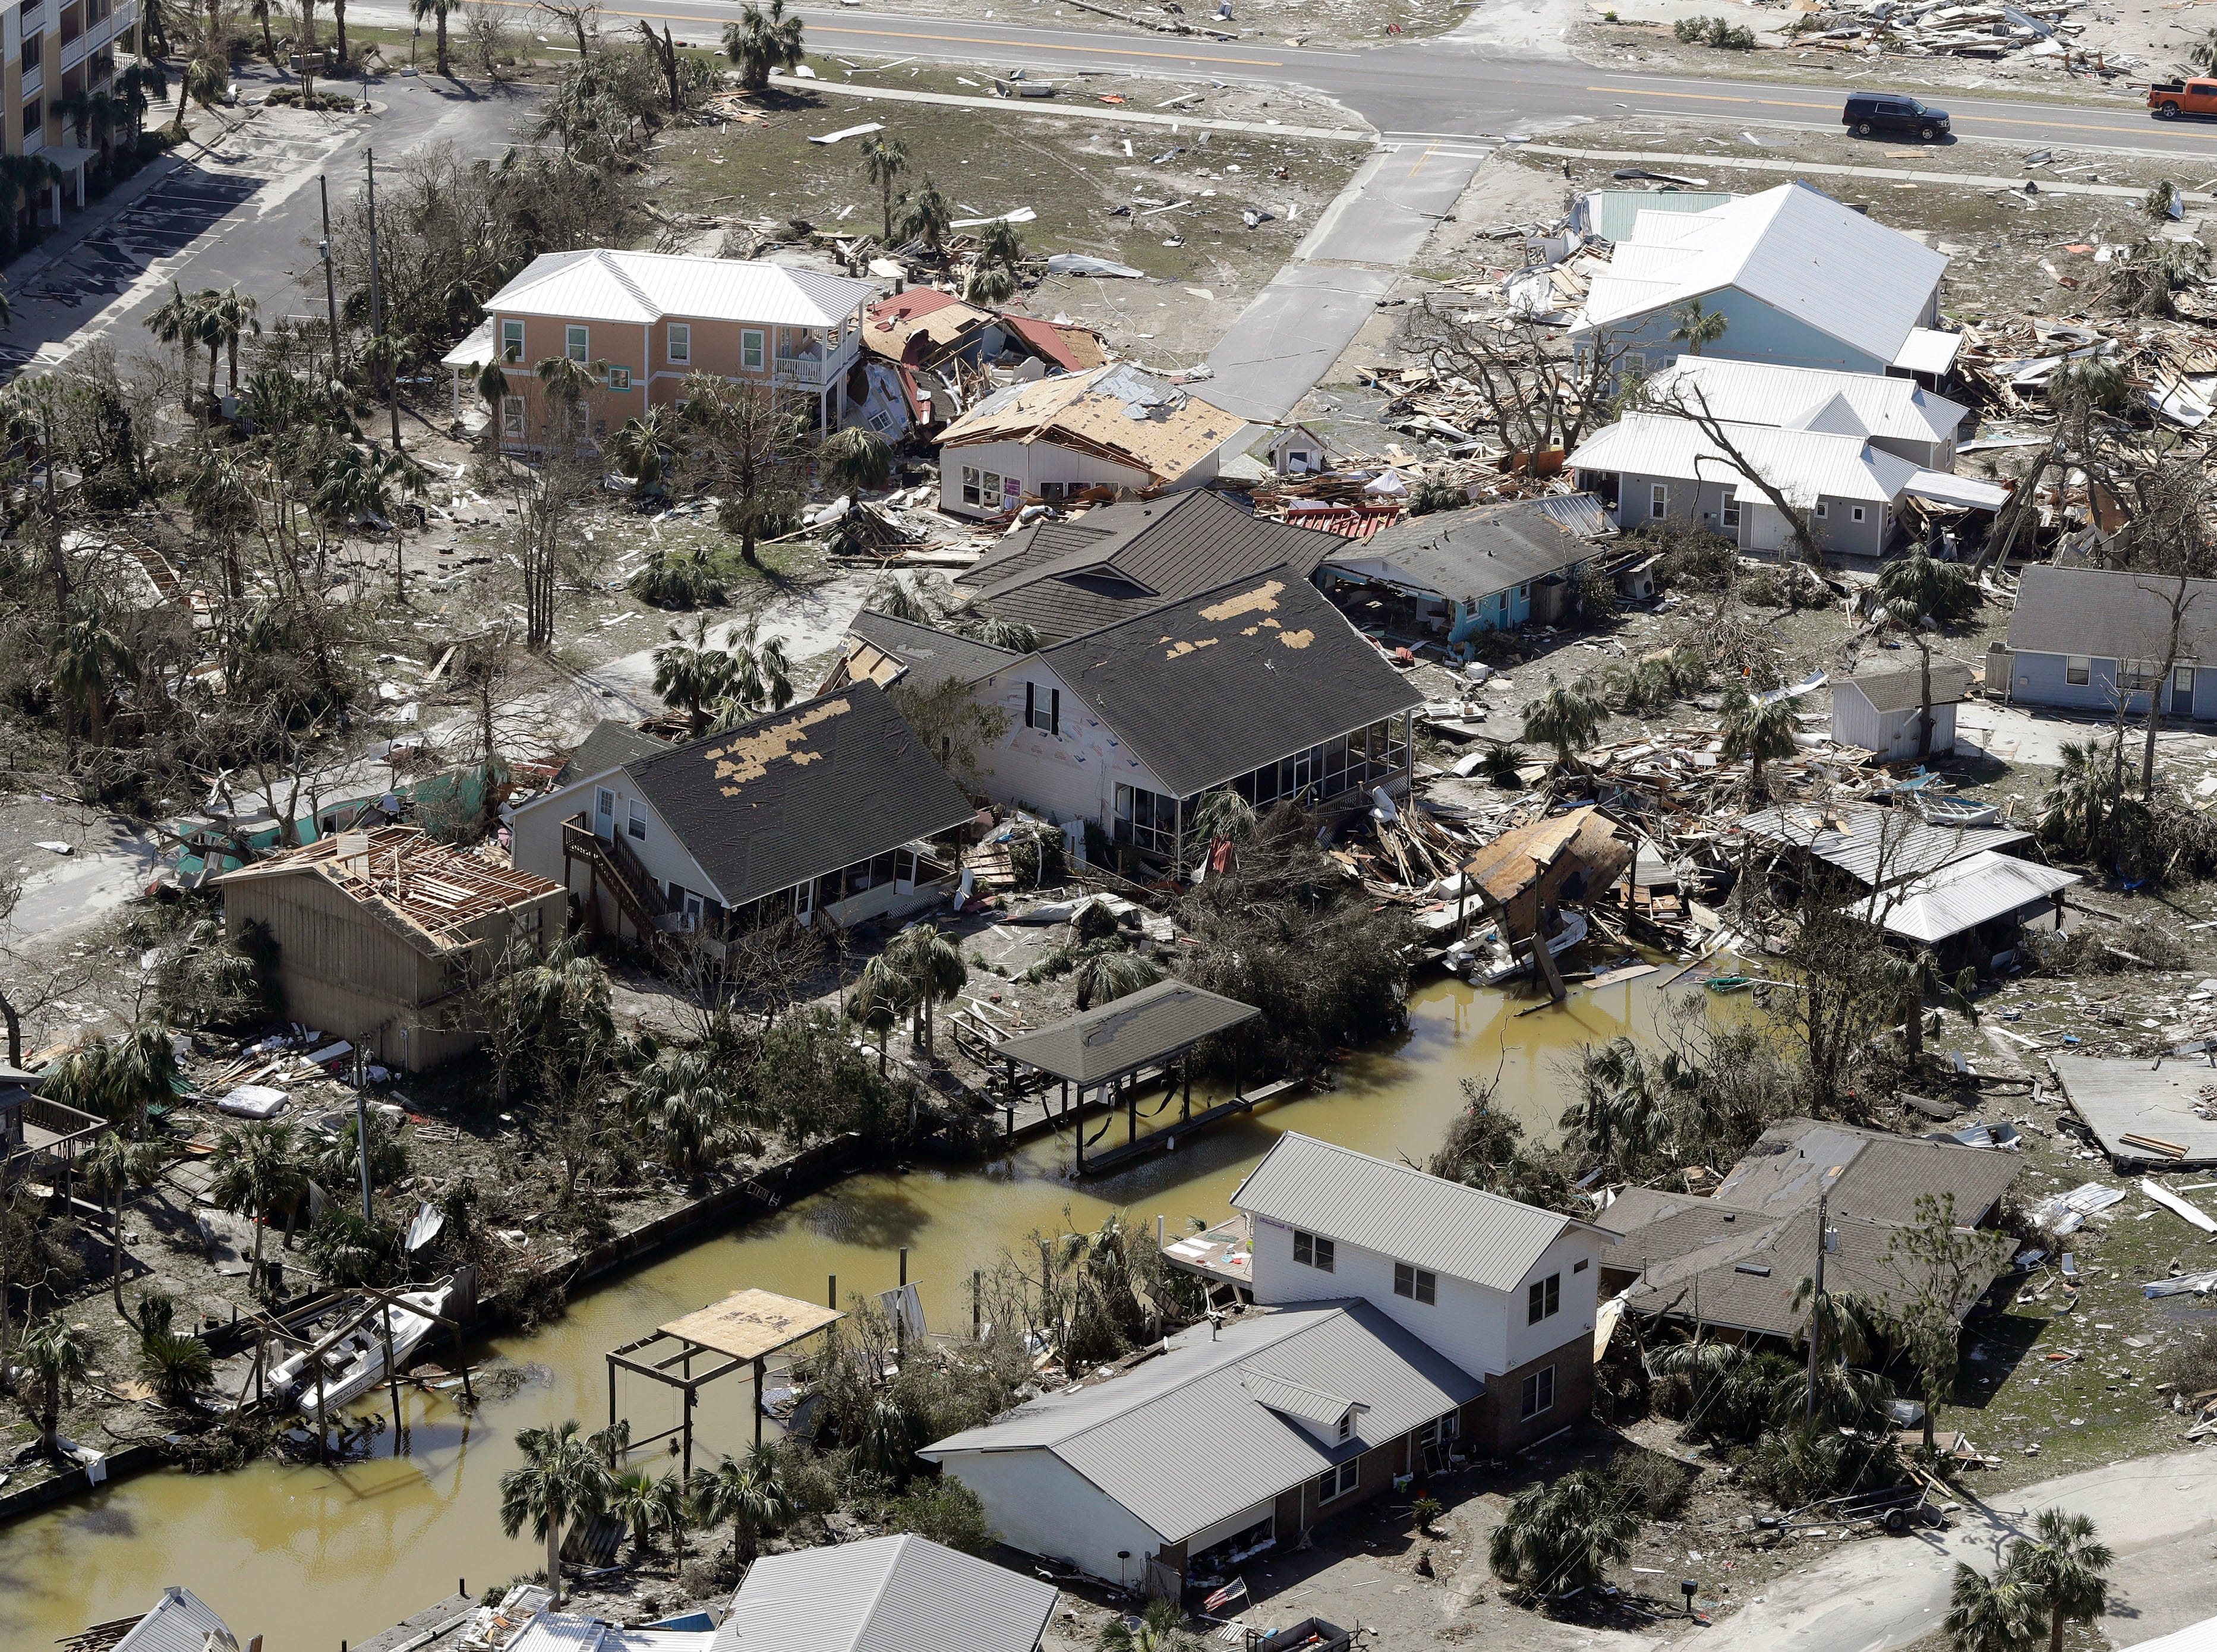 Debris from homes destroyed by Hurricane Michael litters the ground Thursday, Oct. 11, 2018, in Mexico Beach, Fla. (AP Photo/Chris O'Meara)